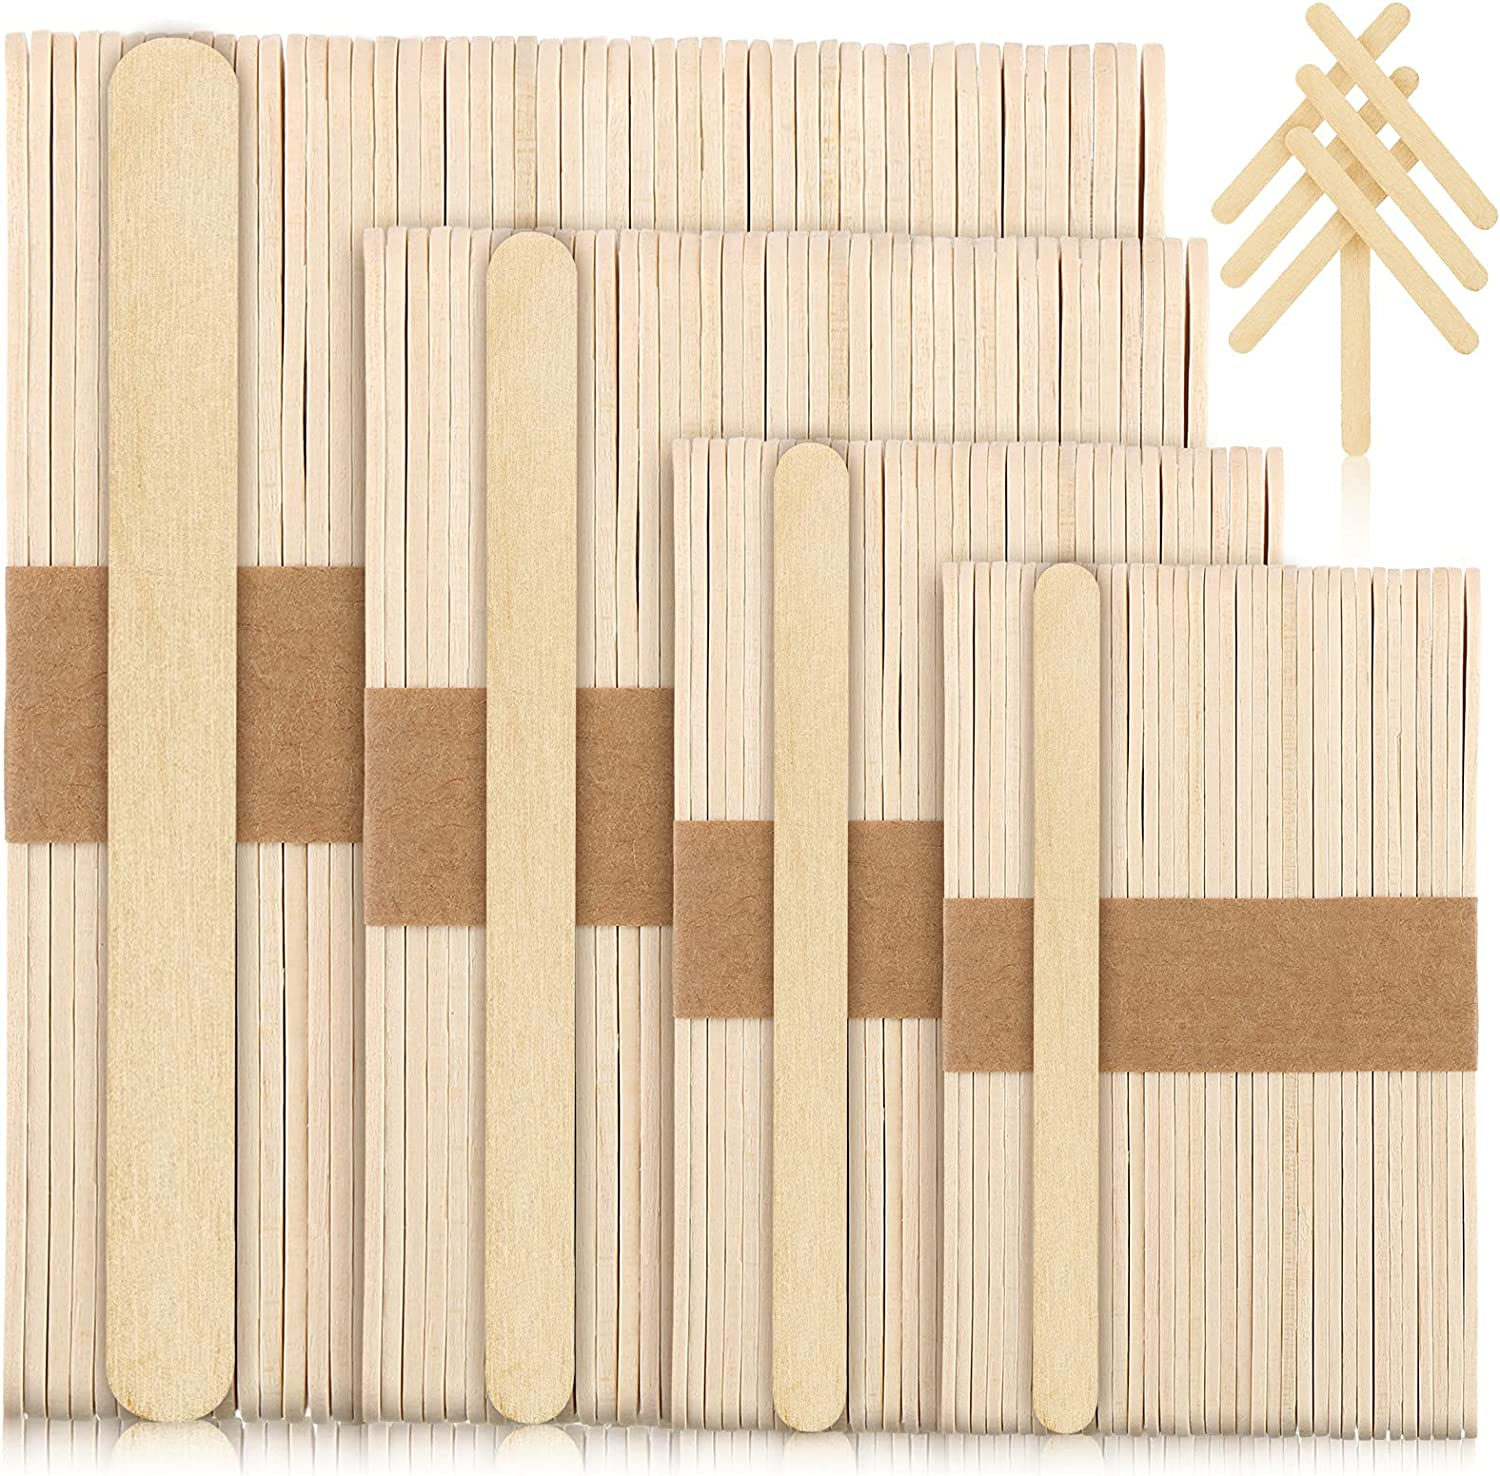 200 Pieces Wooden Popsicle Sticks 2.6, 4.5, 5.9, 7.9 Inch Long Wood Craft Food Sticks Ice-Cream Craft Sticks DIY Wood Waxing Sticks for Handicrafts Ice Cream Dessert Making, 4 Sizes